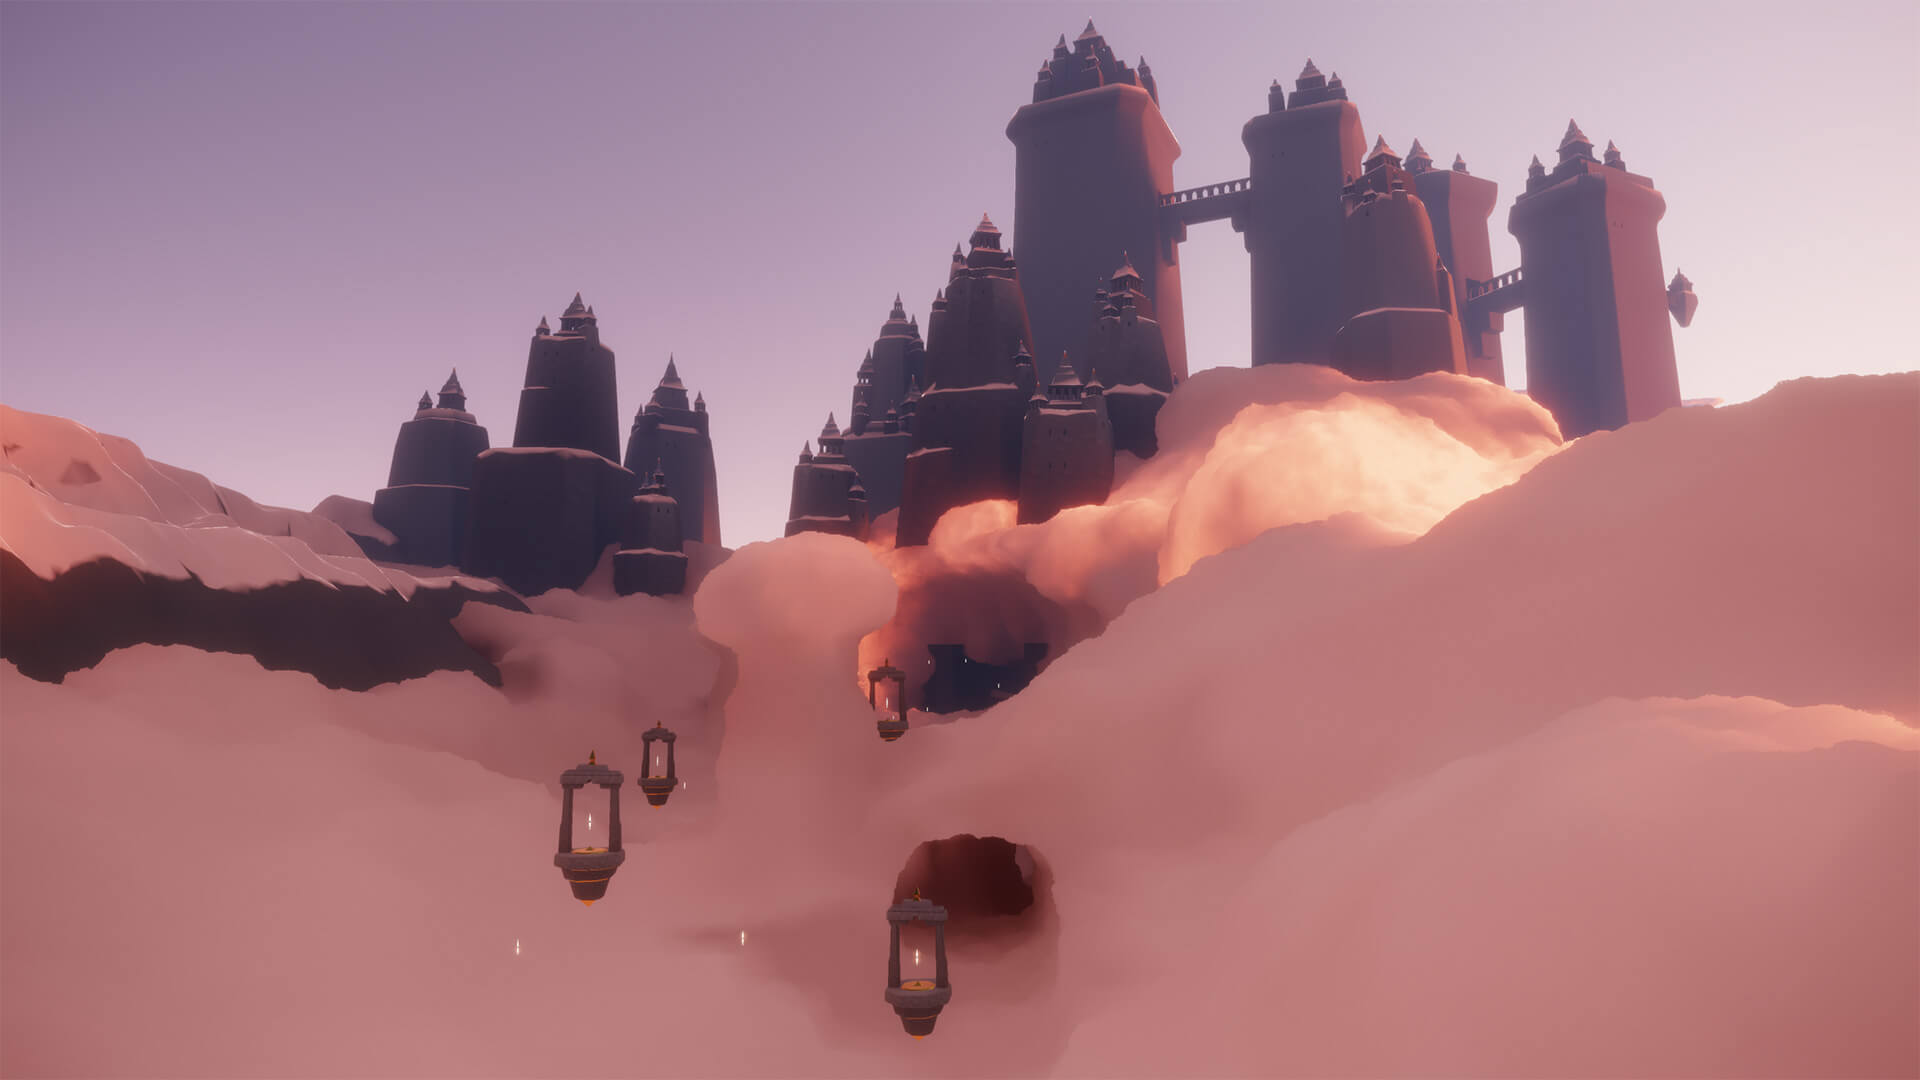 A surreal landscape from their latest release Sky: Children of the Light | Sky: Children of the Light | thatgamecompany | STIRworld